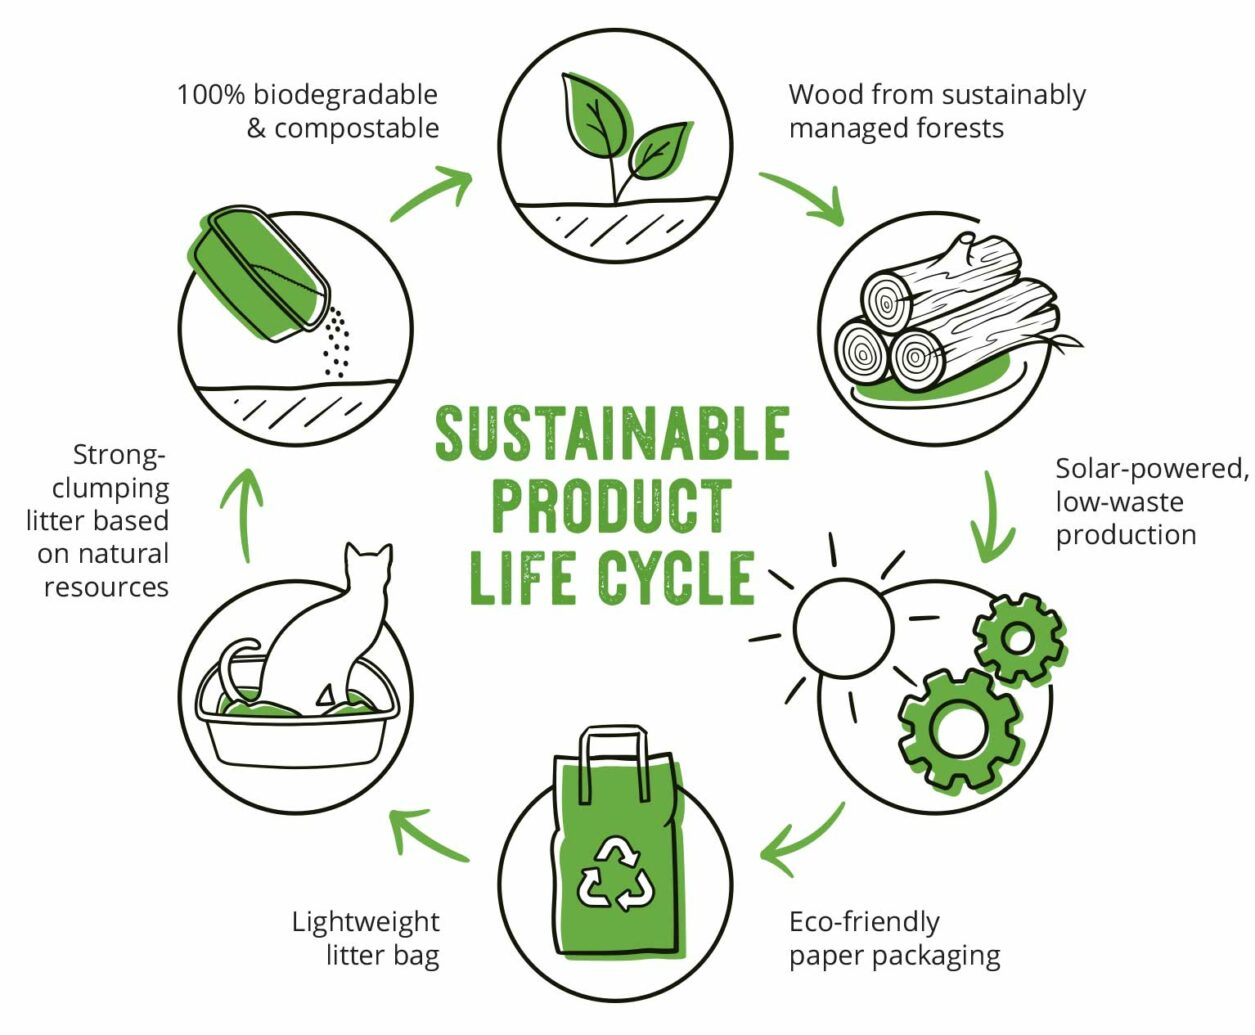 Go Natural Wood Litter - sustainable product life cycle